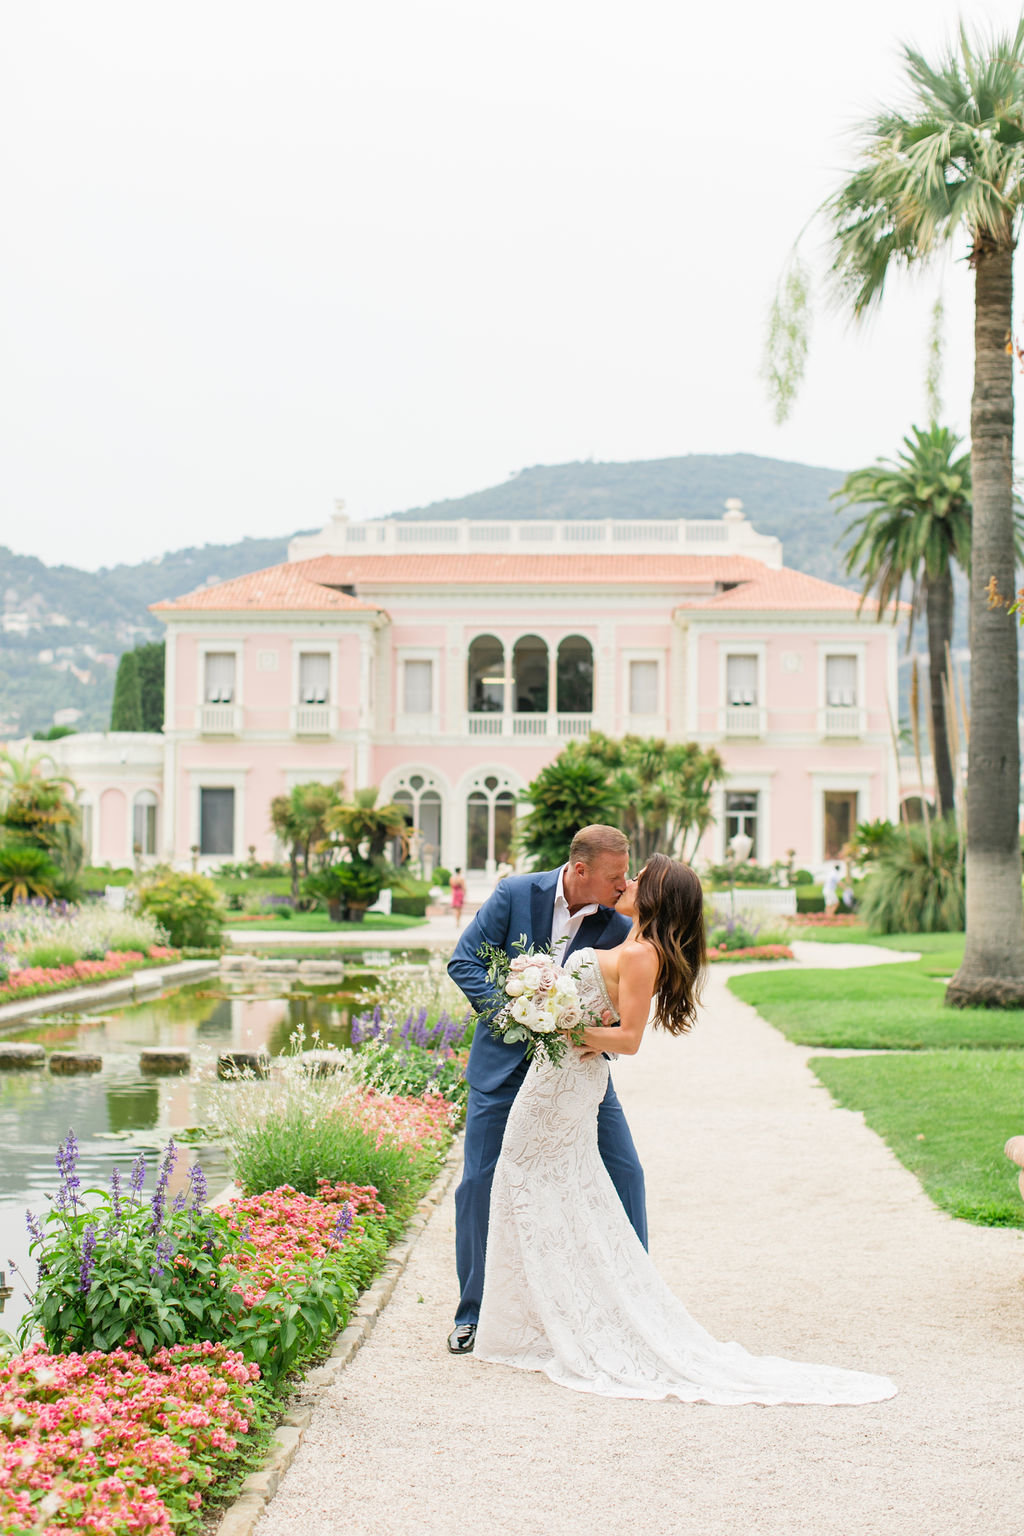 south-france-wedding-photographer-roberta-facchini-photography-153